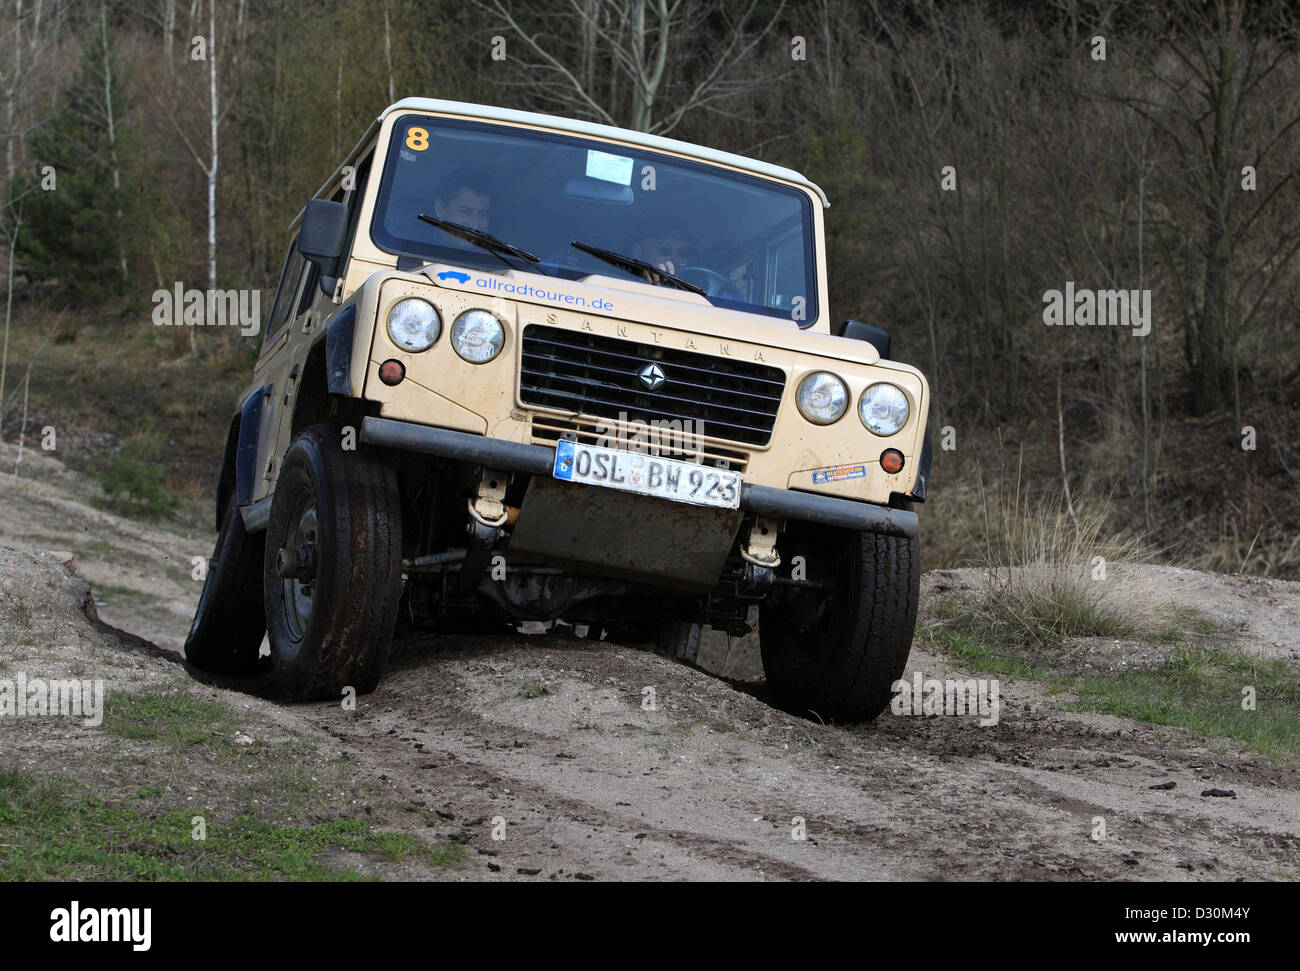 Senftenberg, Germany, terrain vehicle travels over rough terrain - Stock Image